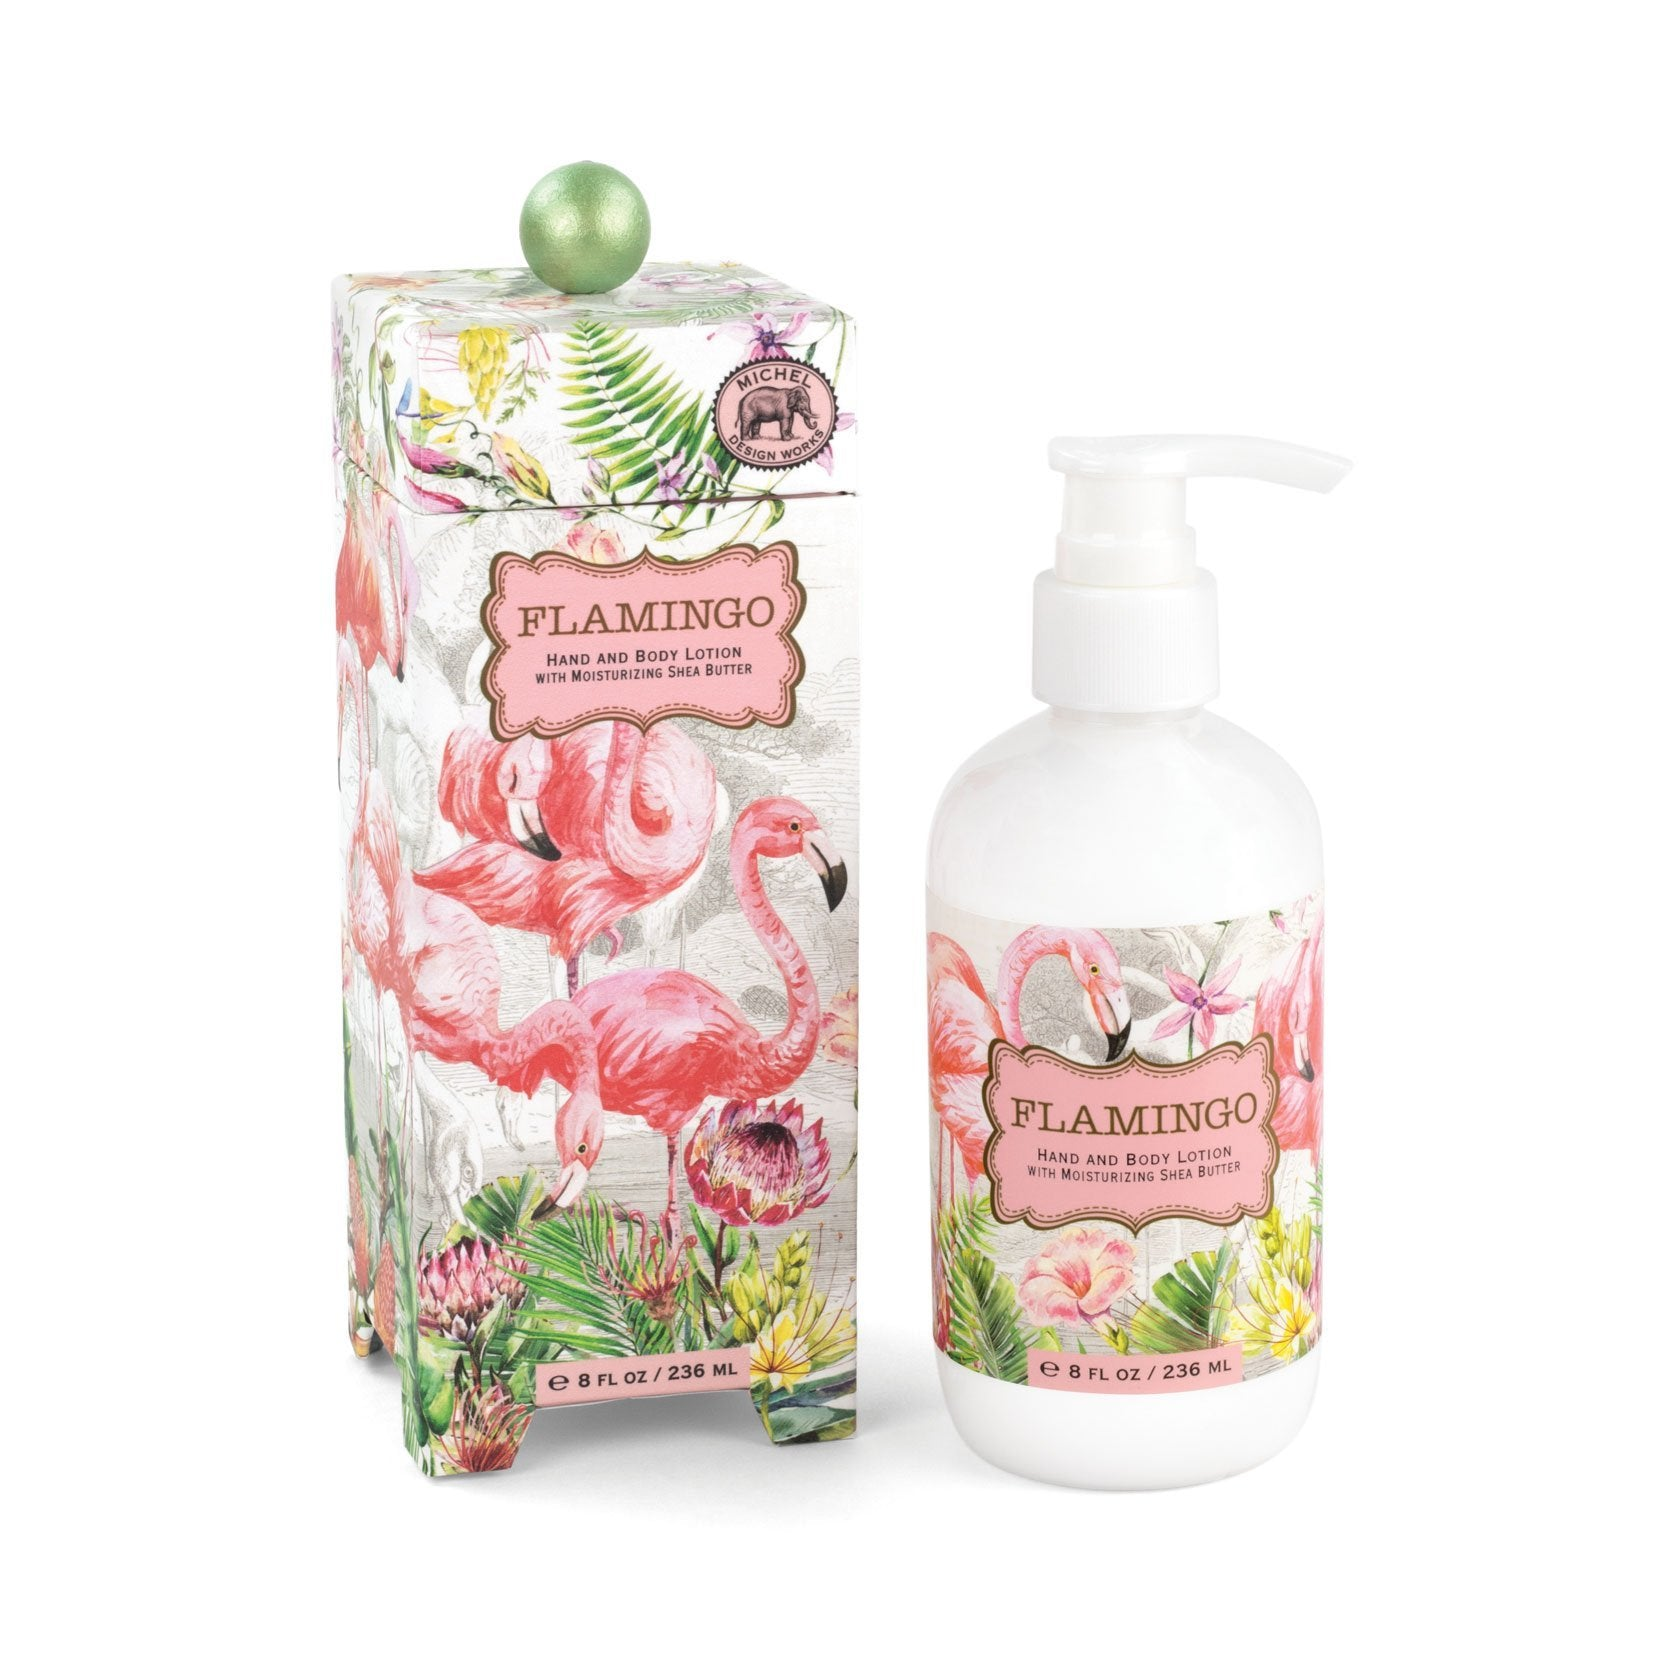 FLAMINGO HAND AND BODY LOTION LOT320 - Molly's! A Chic and Unique Boutique